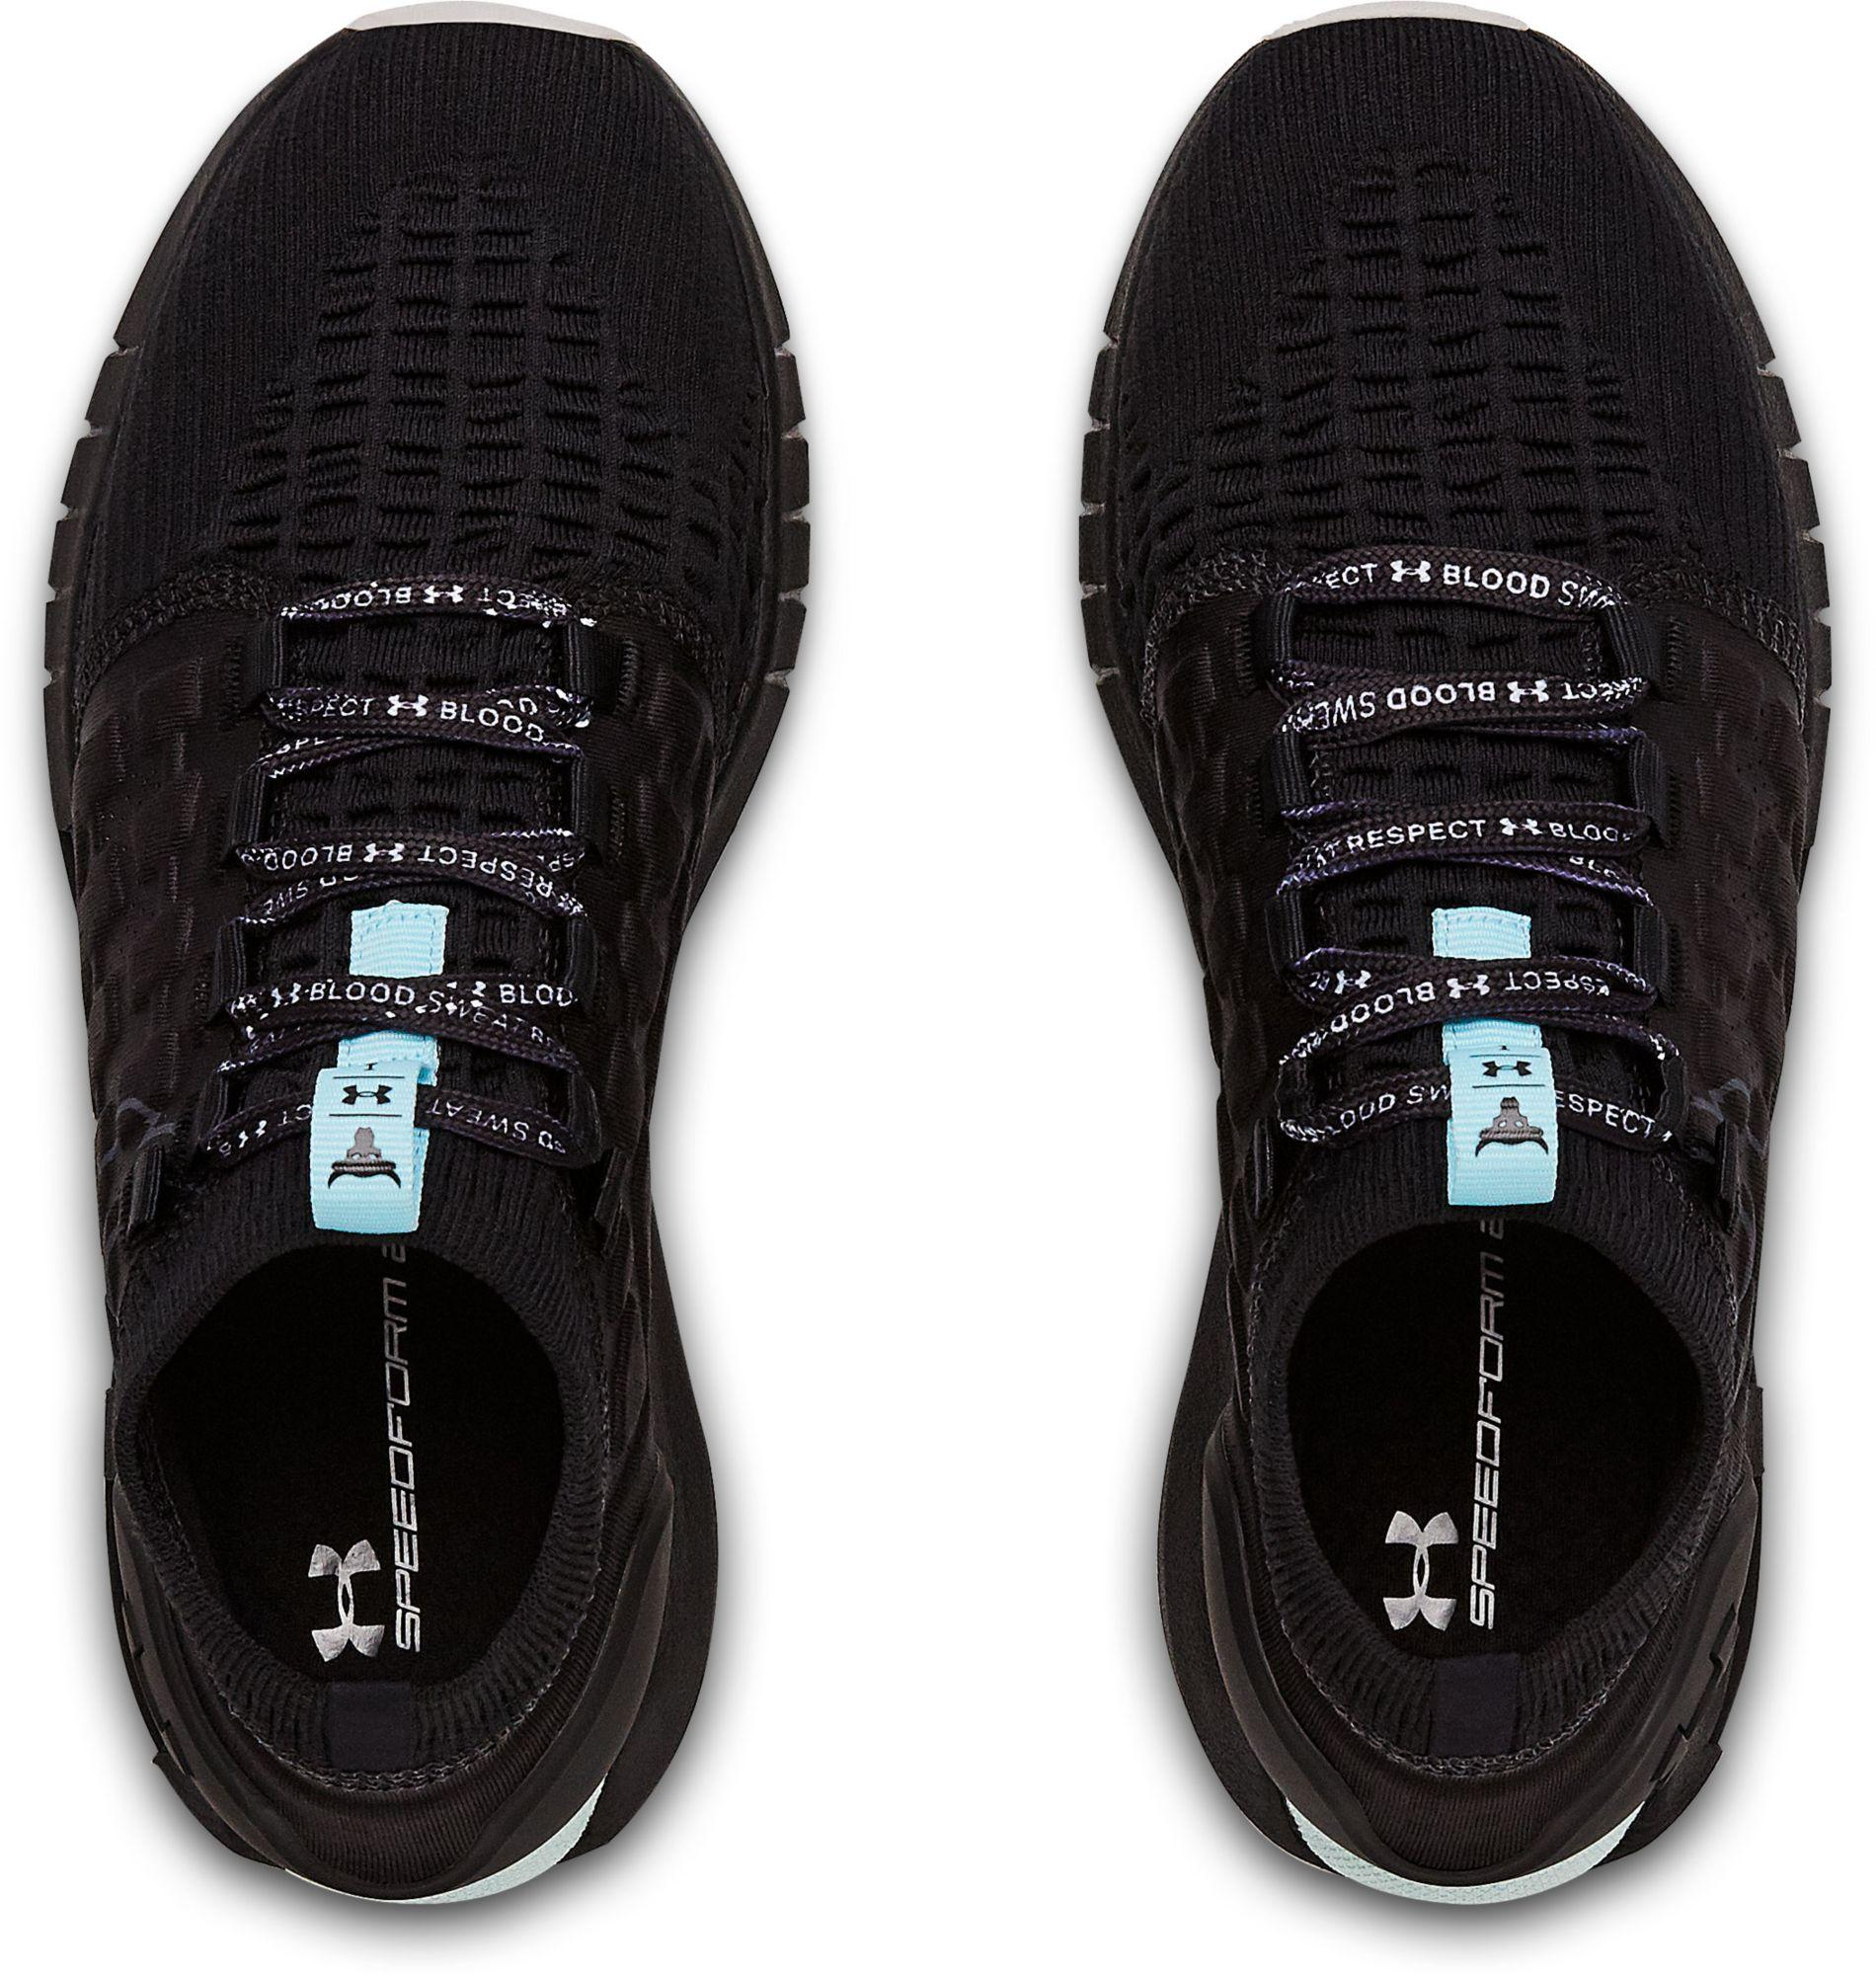 Hovr Phantom Project Rock Running Shoes